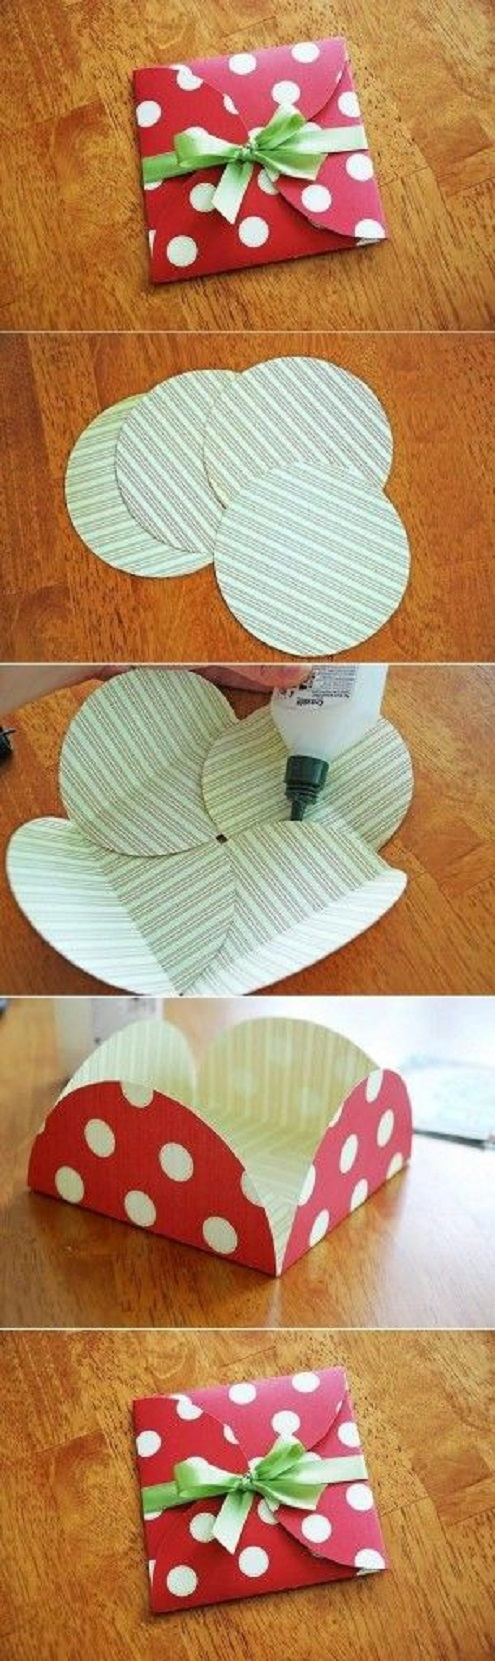 birthday card making step by step ; DIY-Homemade-birthday-card-ideas-and-images-with-illustration-7